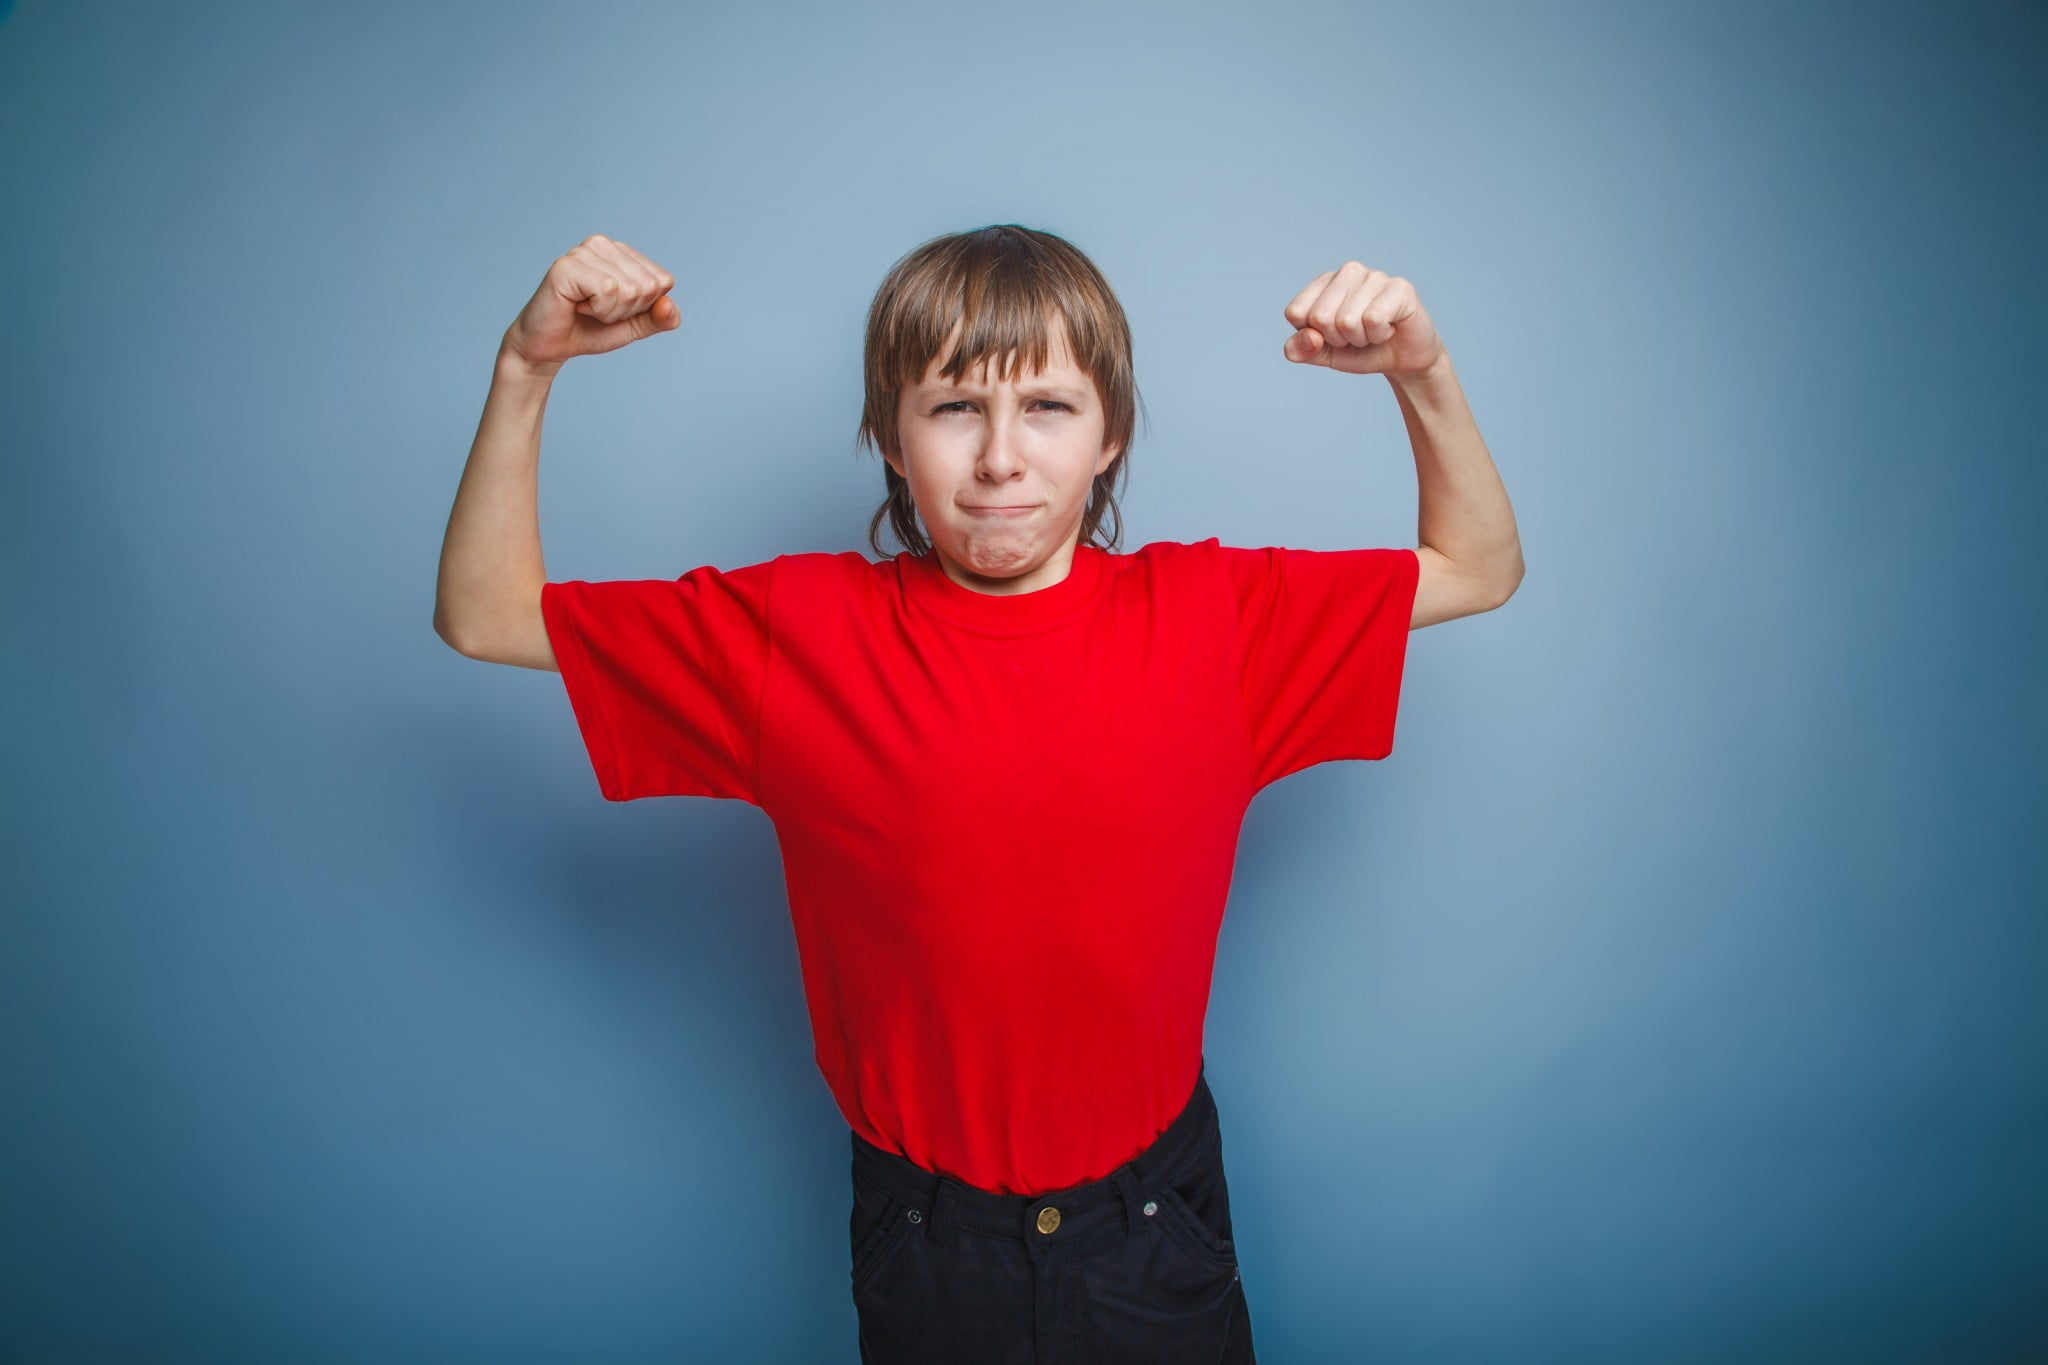 Boys and body image: young boy flexes skinny biceps